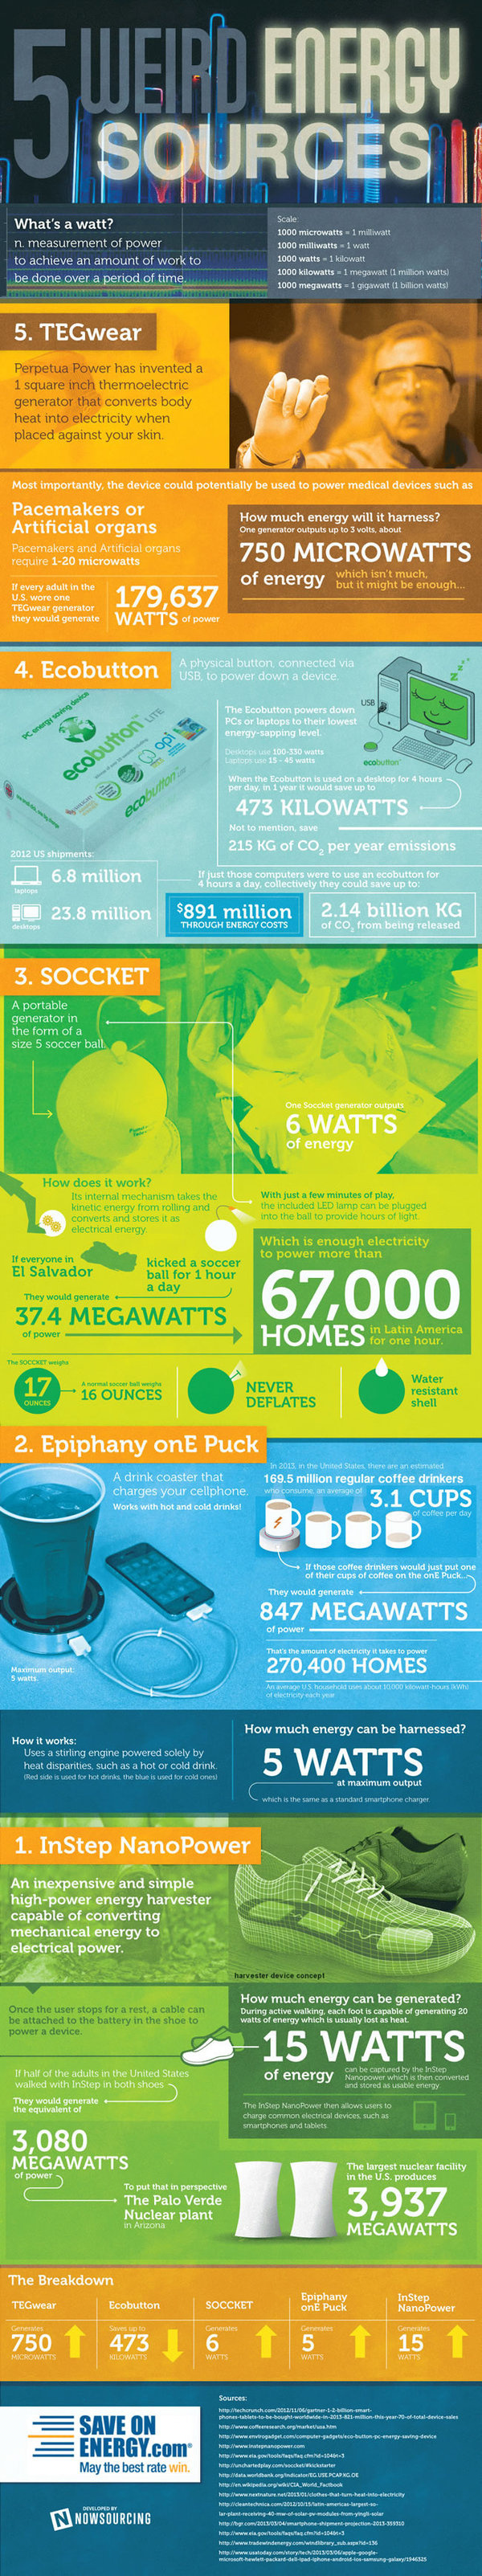 5 Weird Energy Sources #infographic